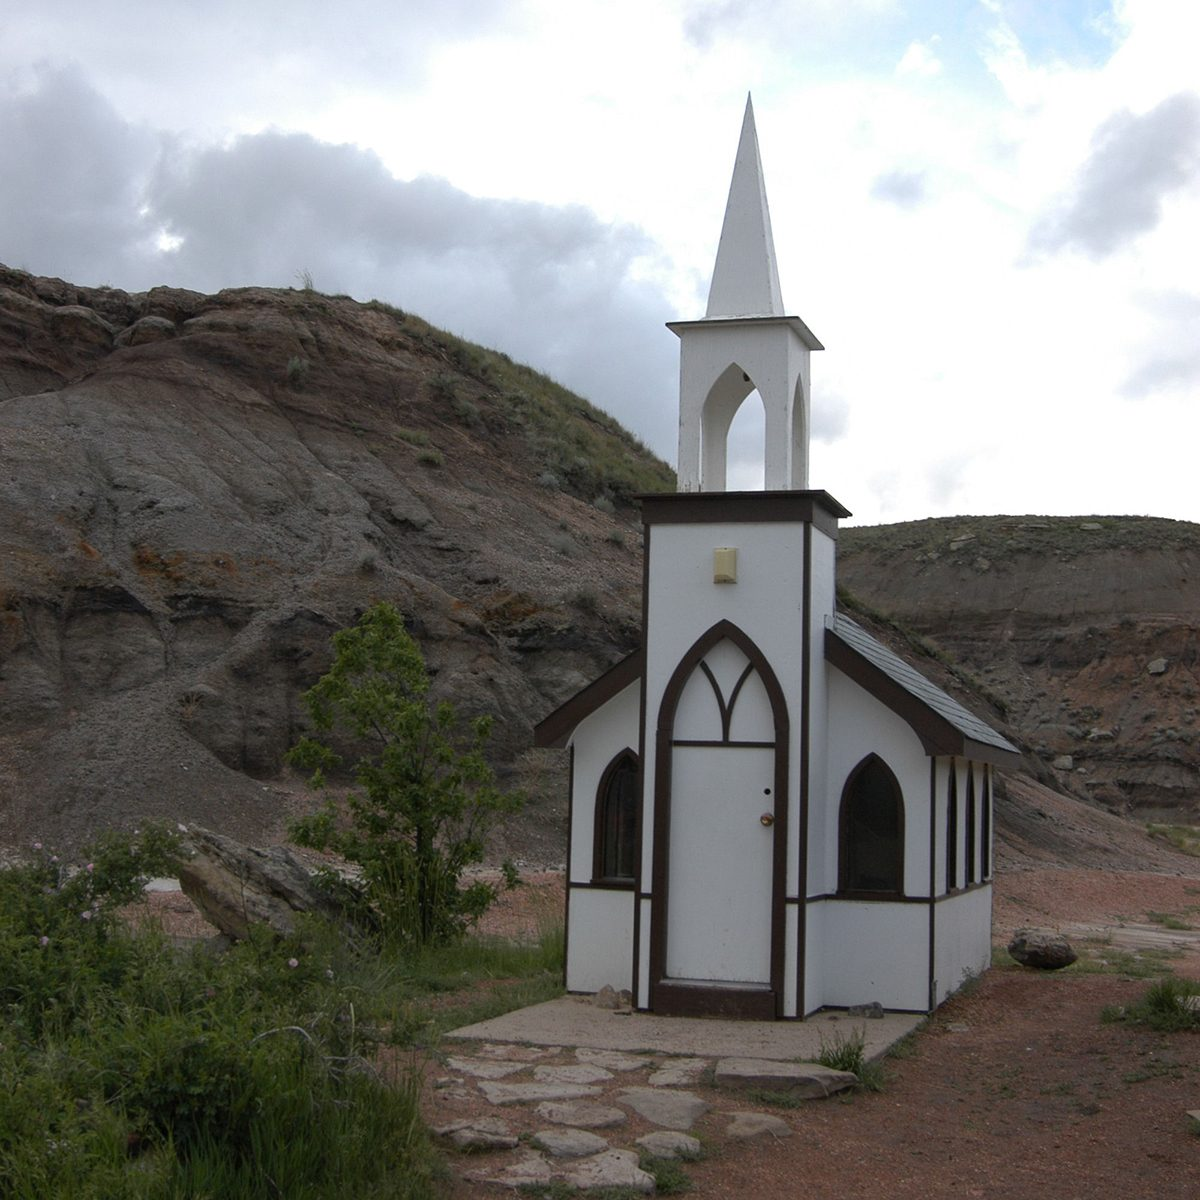 My Happy Place - Little Church Drumheller